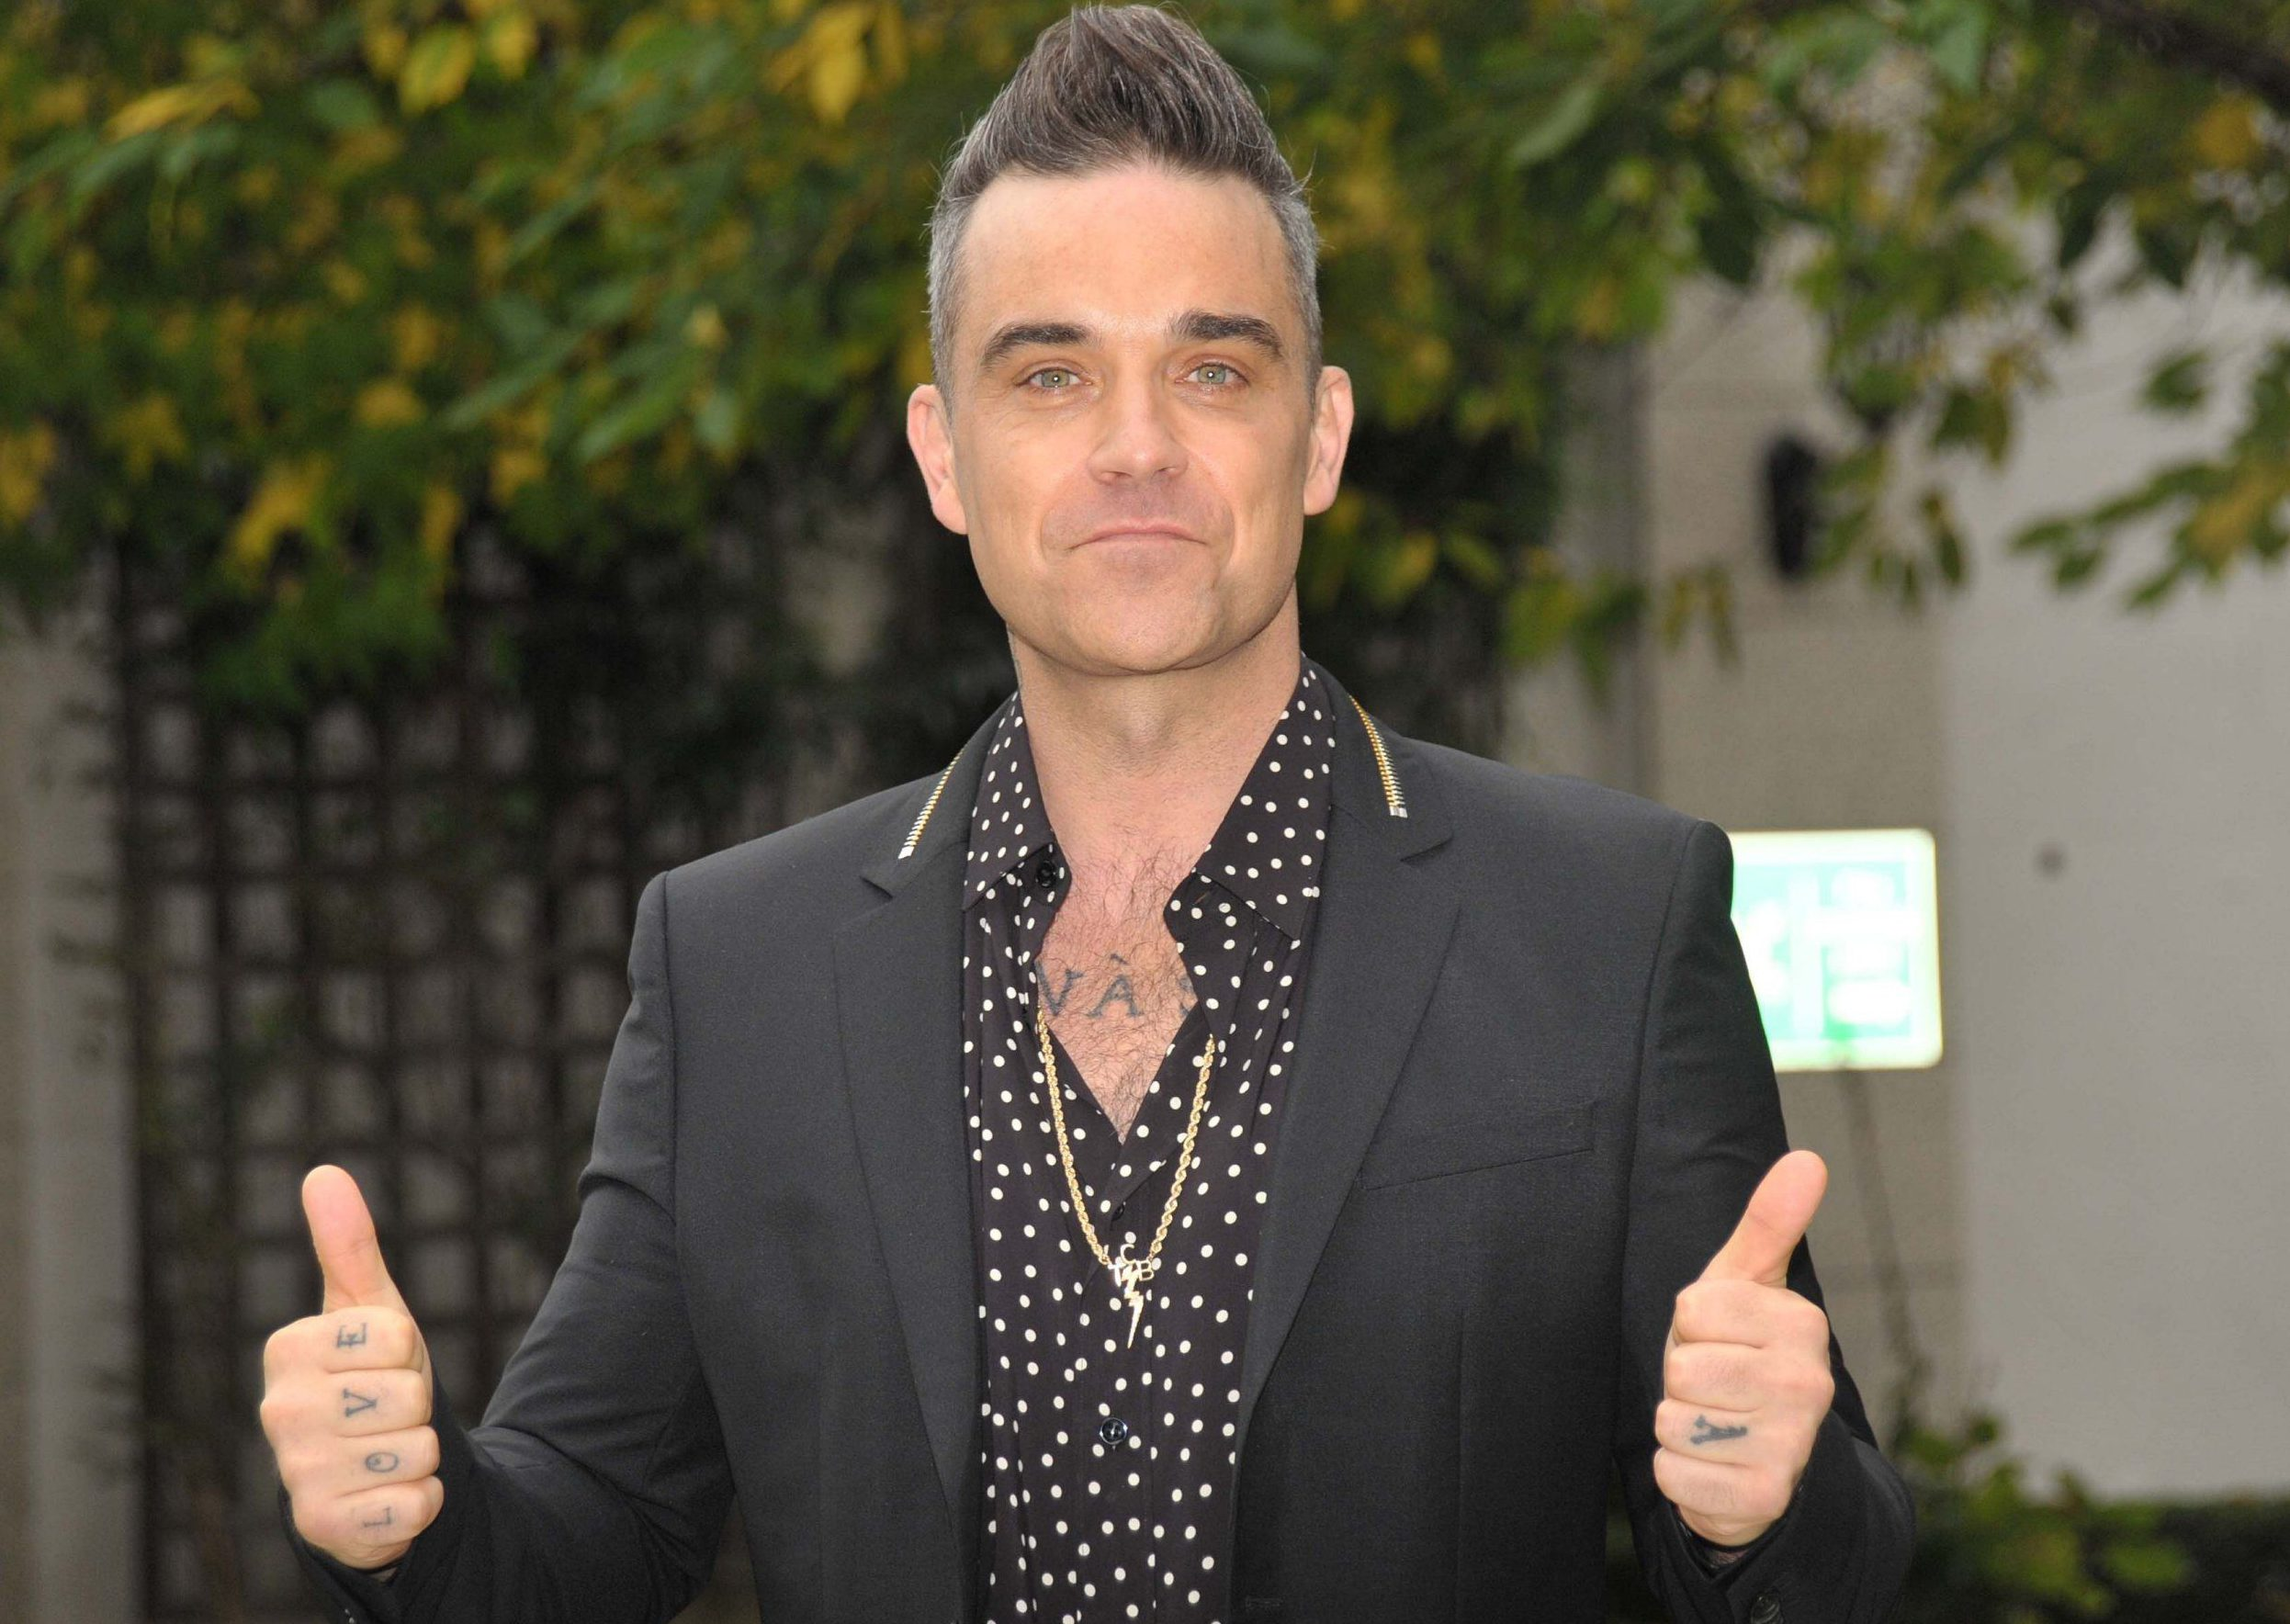 Robbie Williams says new anti-depressant medication has helped 'silence the demons'